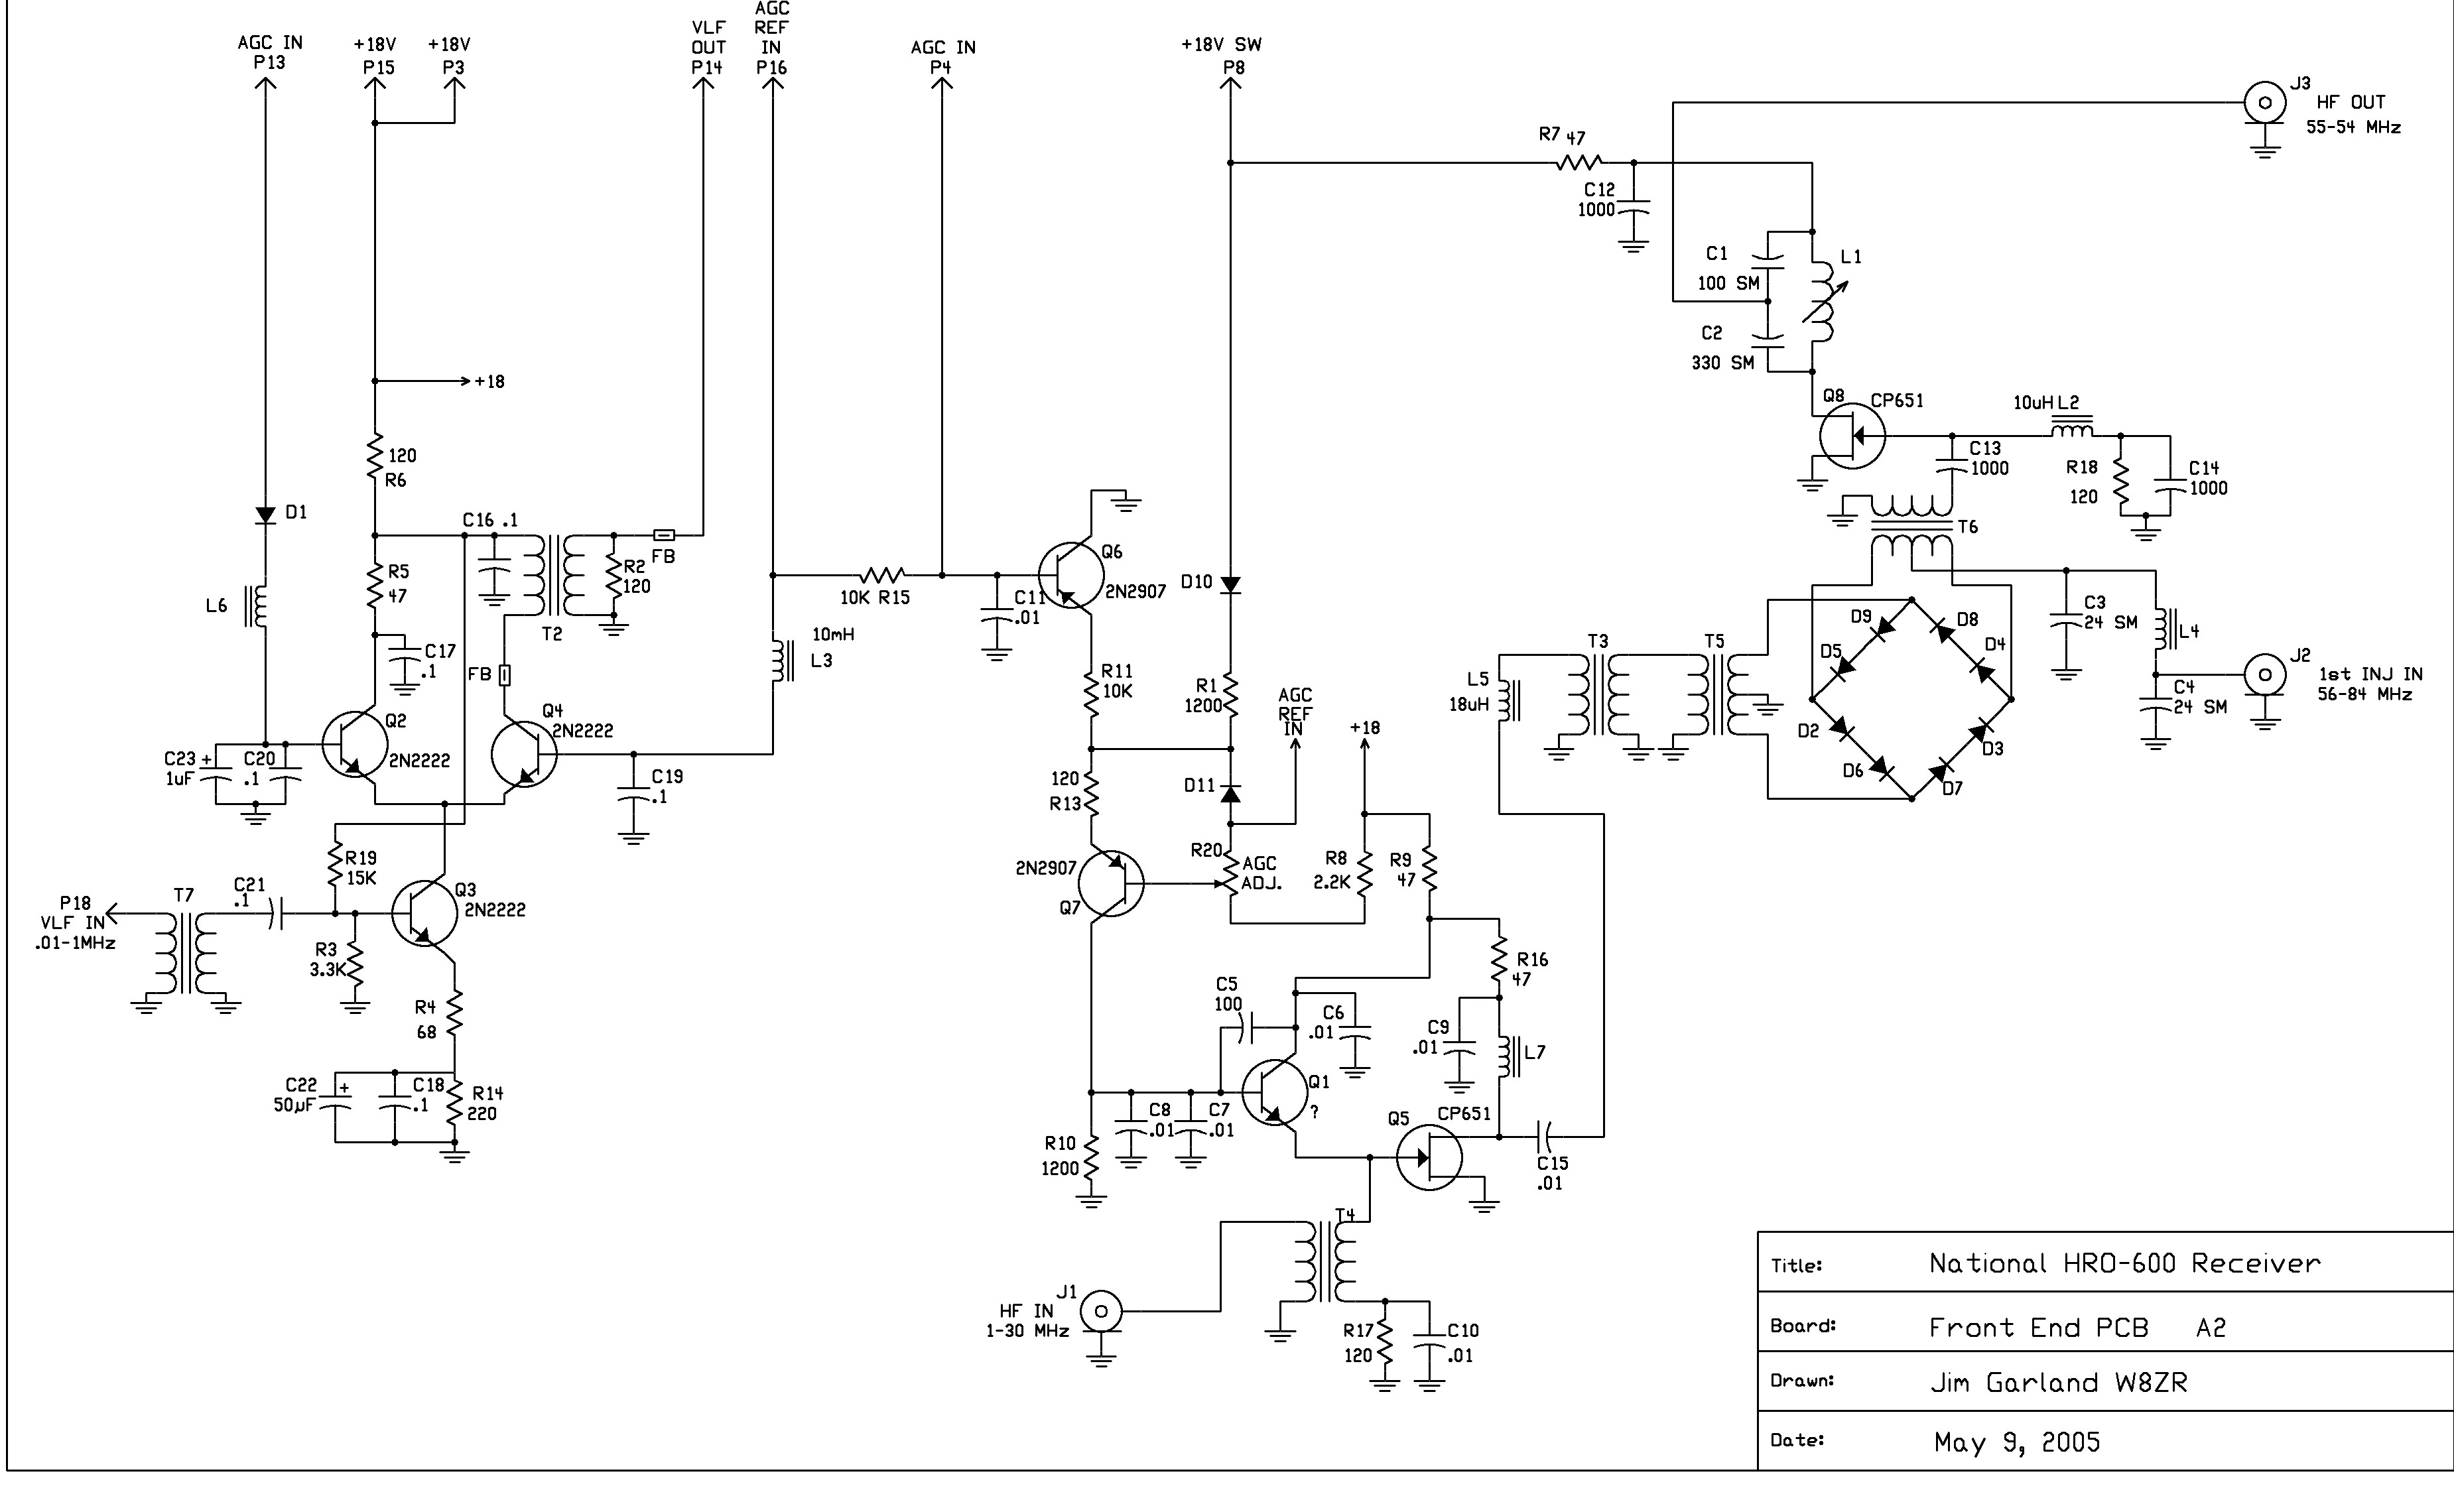 Small Electret Microphone Pre  lifier moreover Schemview likewise Low Noise Pre lifier additionally Iyv2 gt224 ra469 together with Hro600. on microphone amplifier circuit diagram